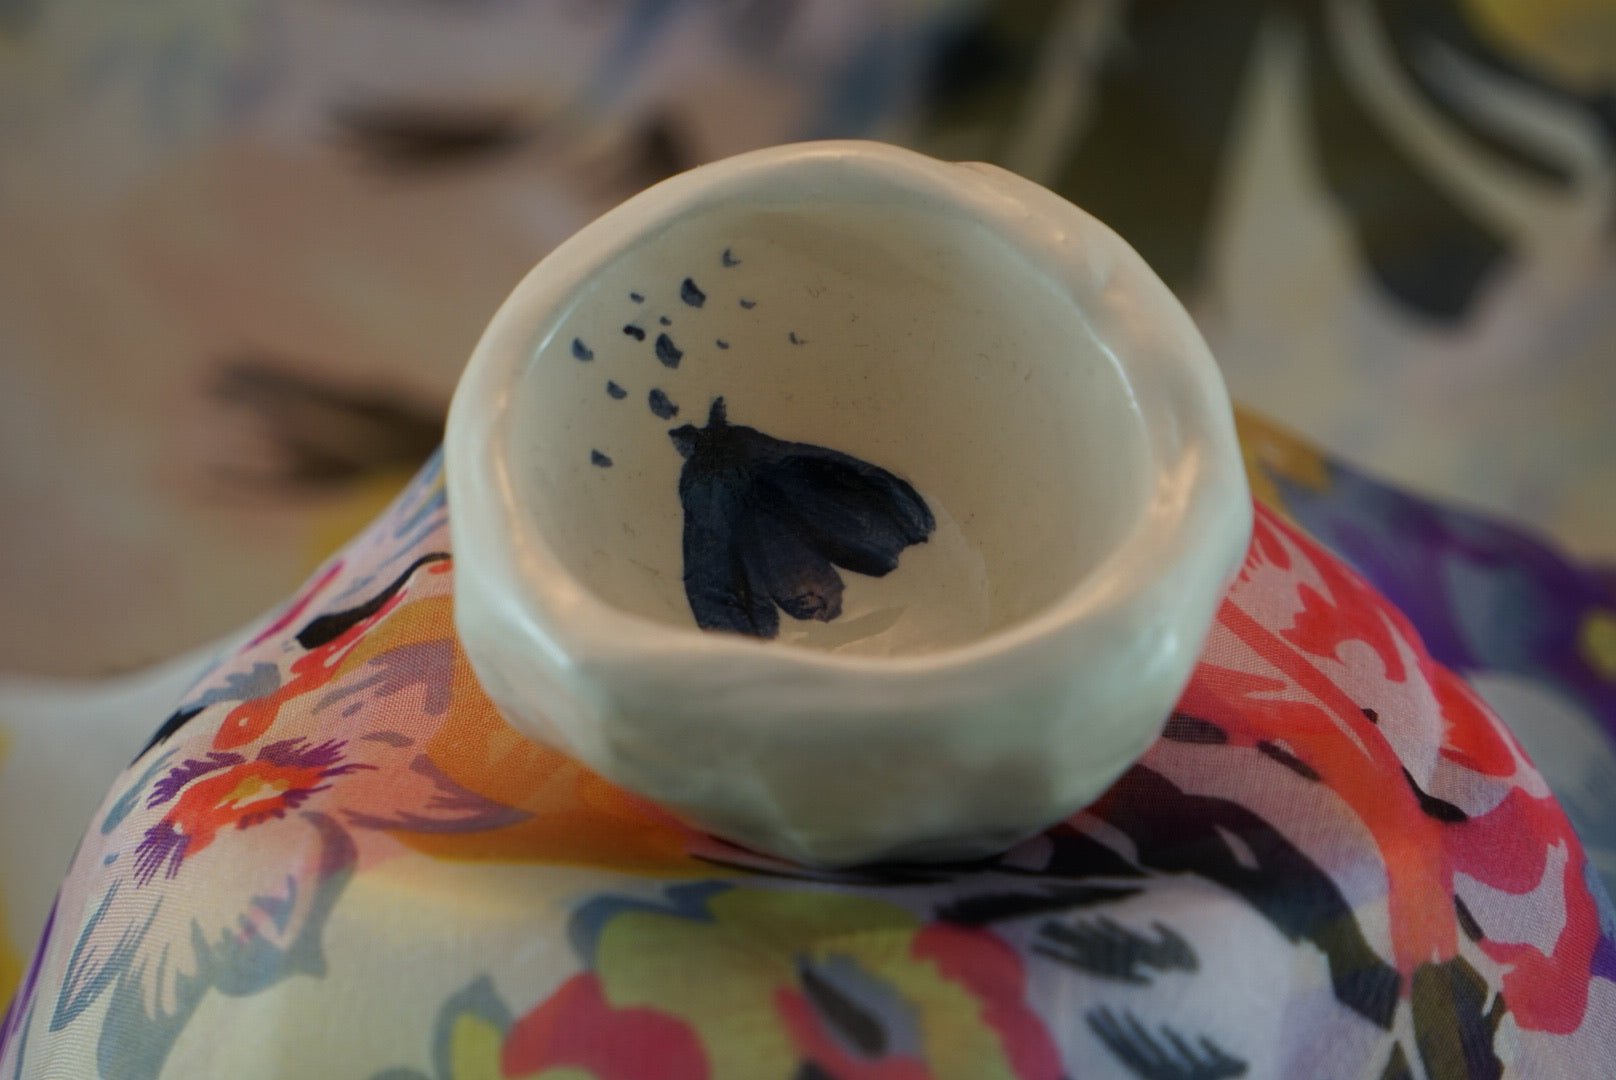 Small, handmade white ceramic pinch pot with loosely drawn blue insects.